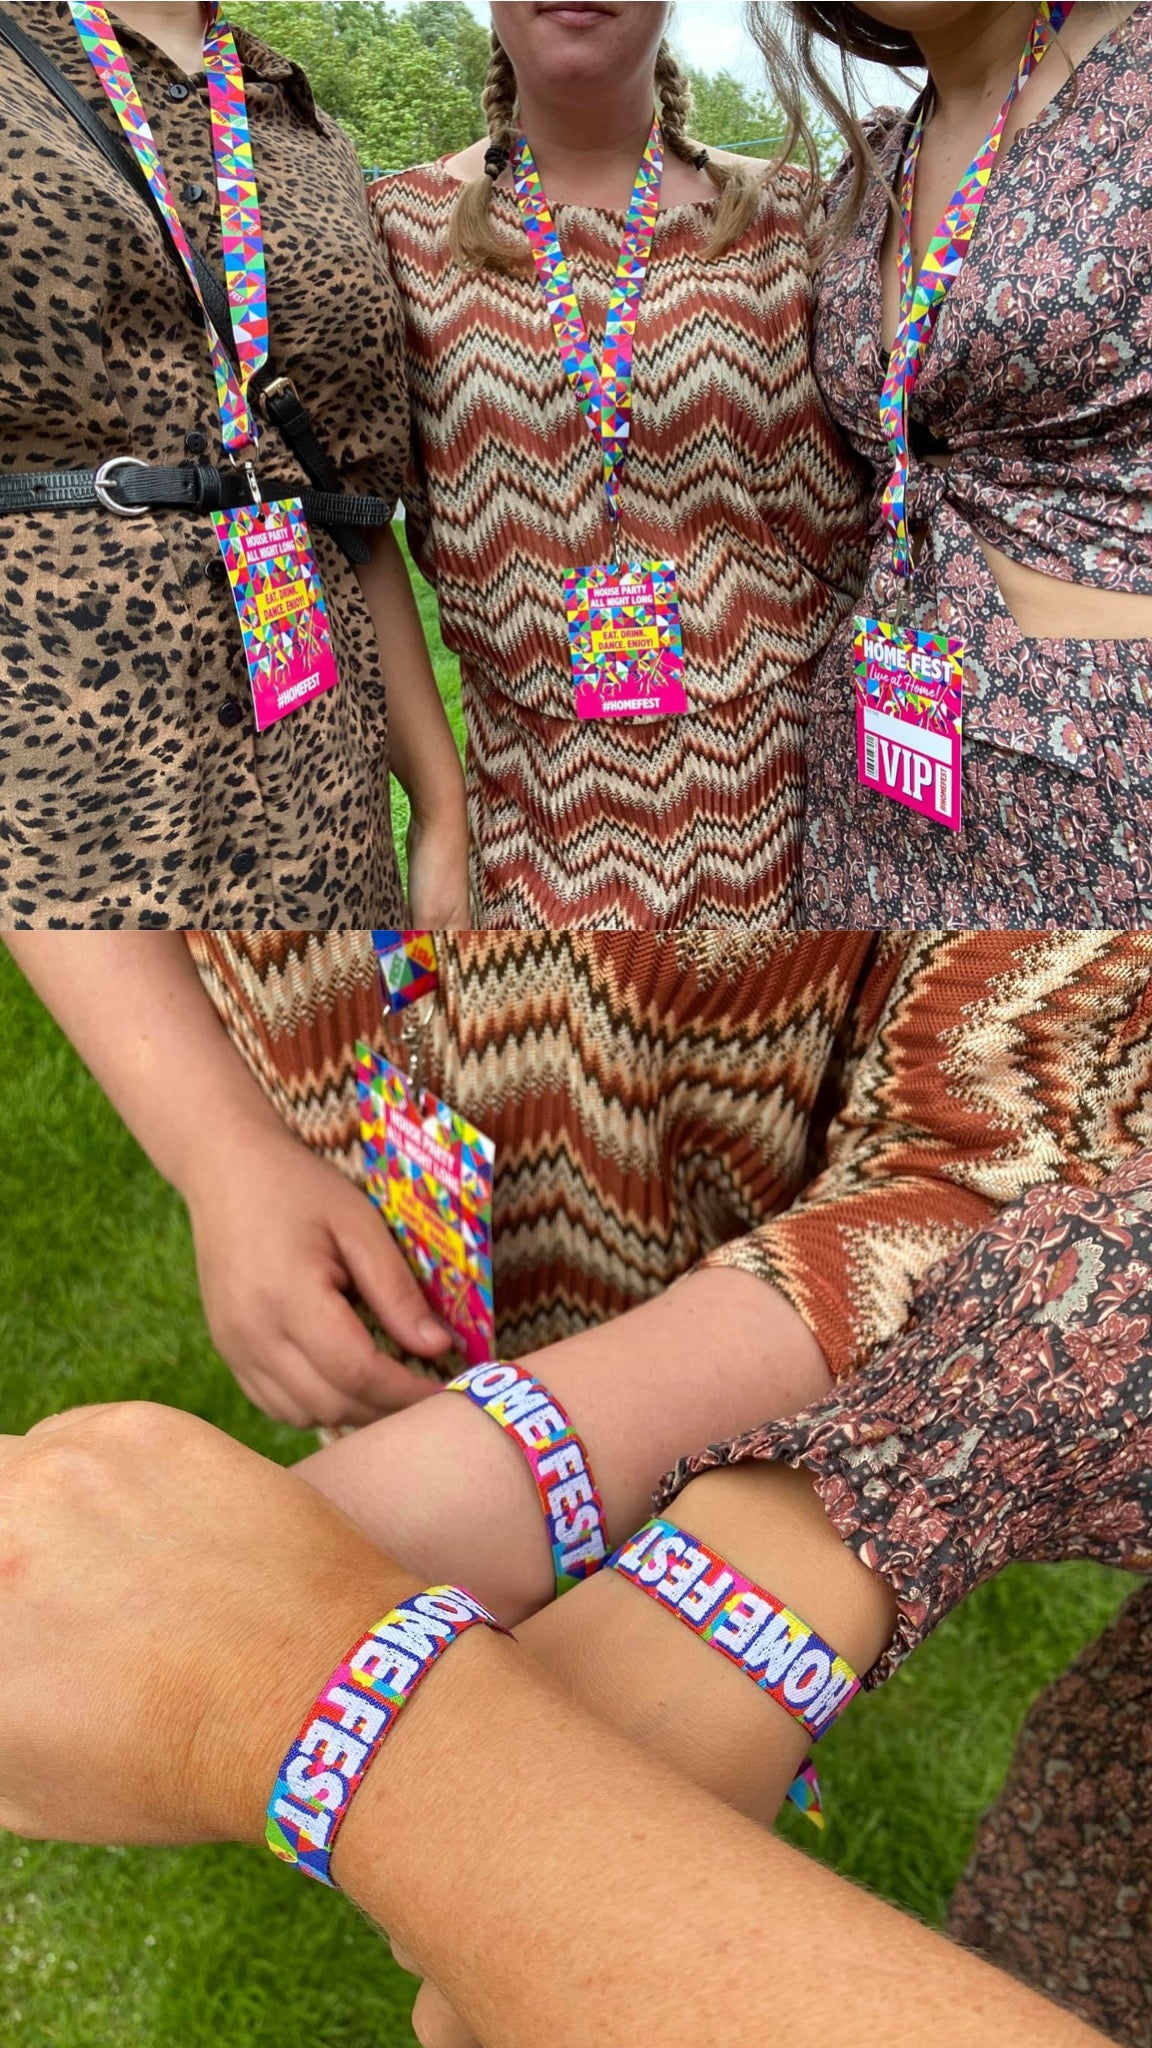 home fest festival party at home lanyards wristbands